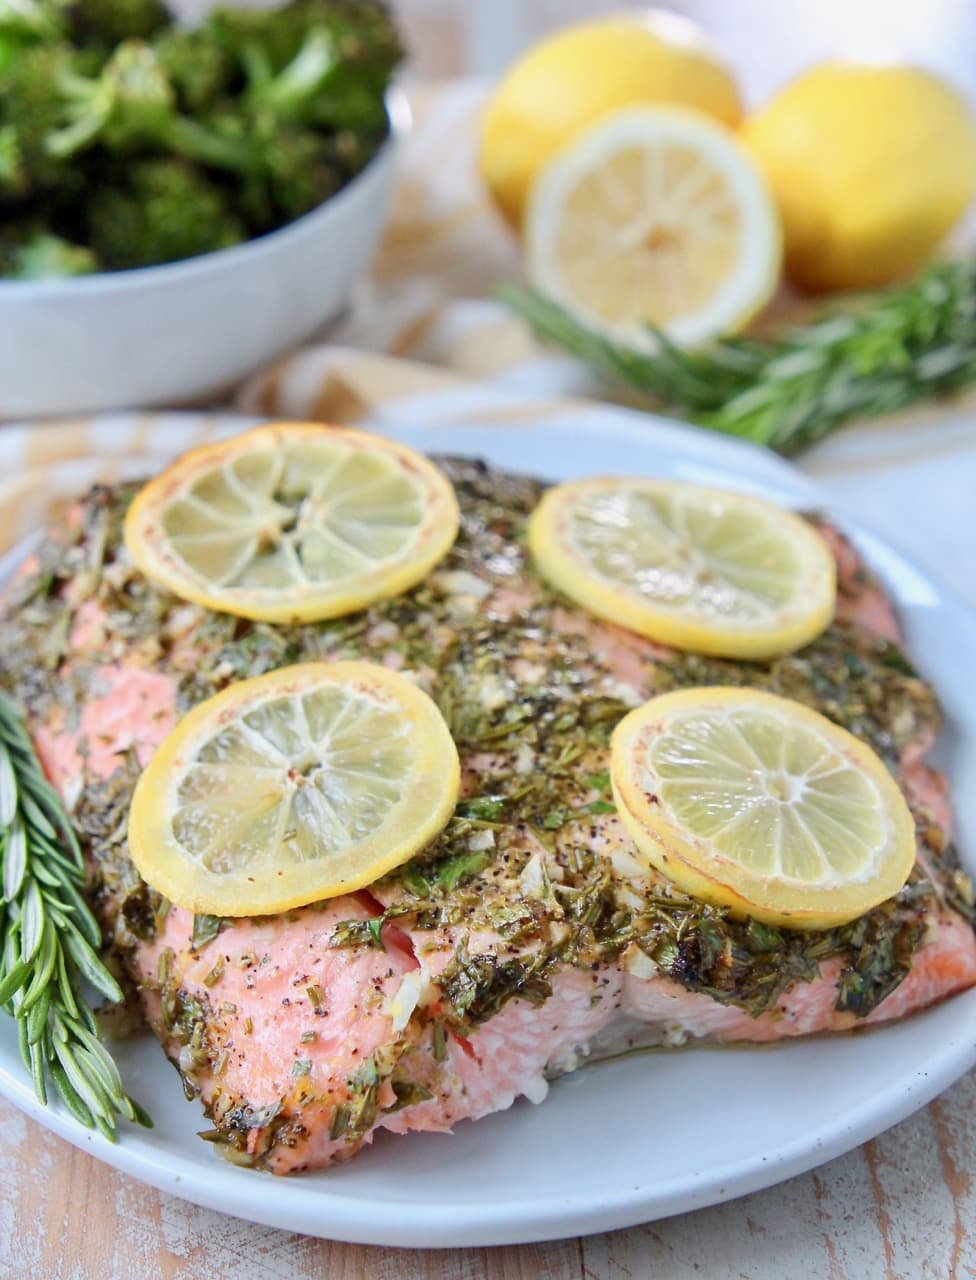 Piece of baked salmon on plate, topped with herbs and lemon slices